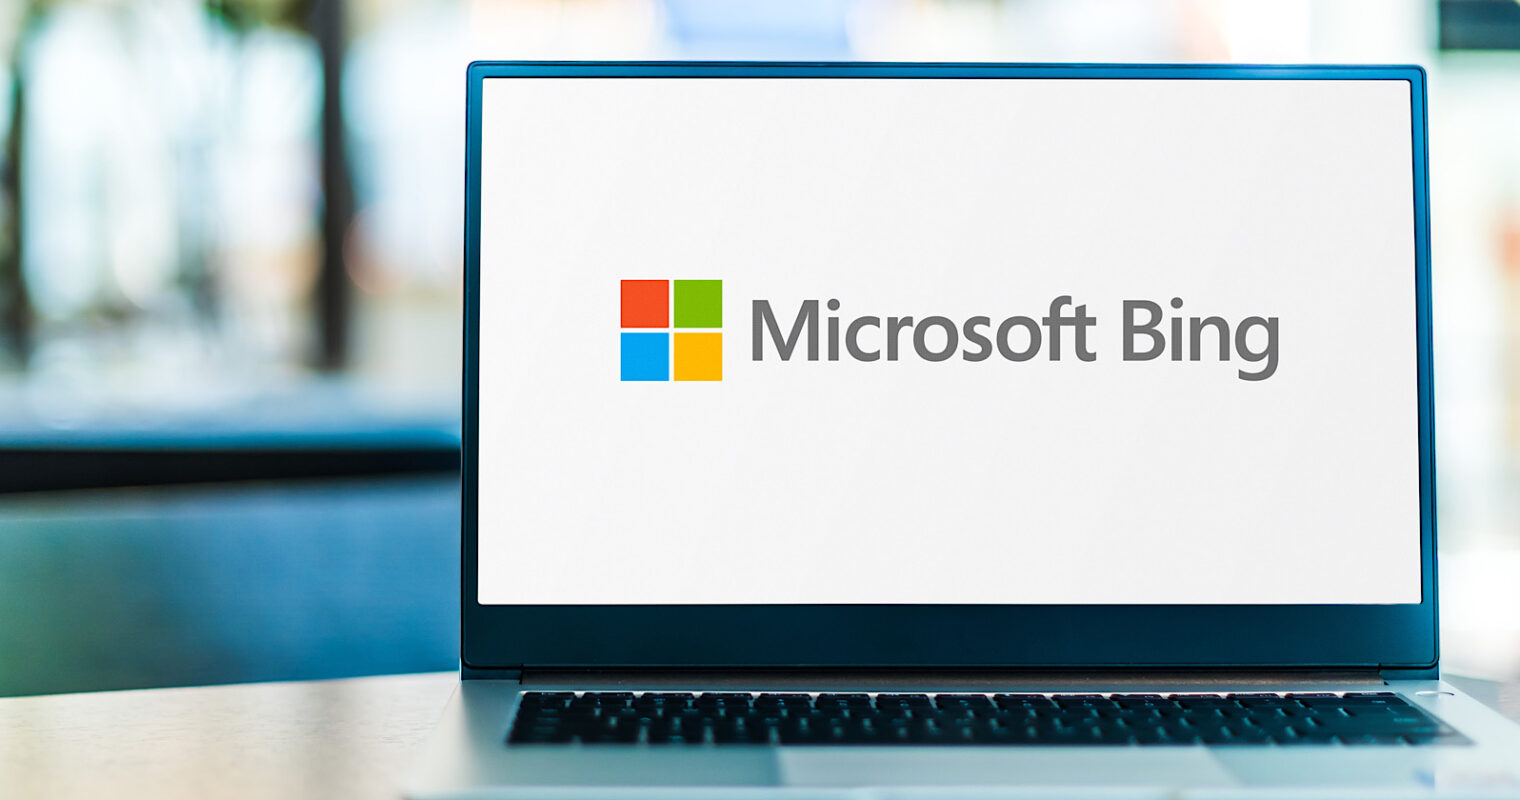 Microsoft Bing Rolls Out 5 Upgrades to Search Results